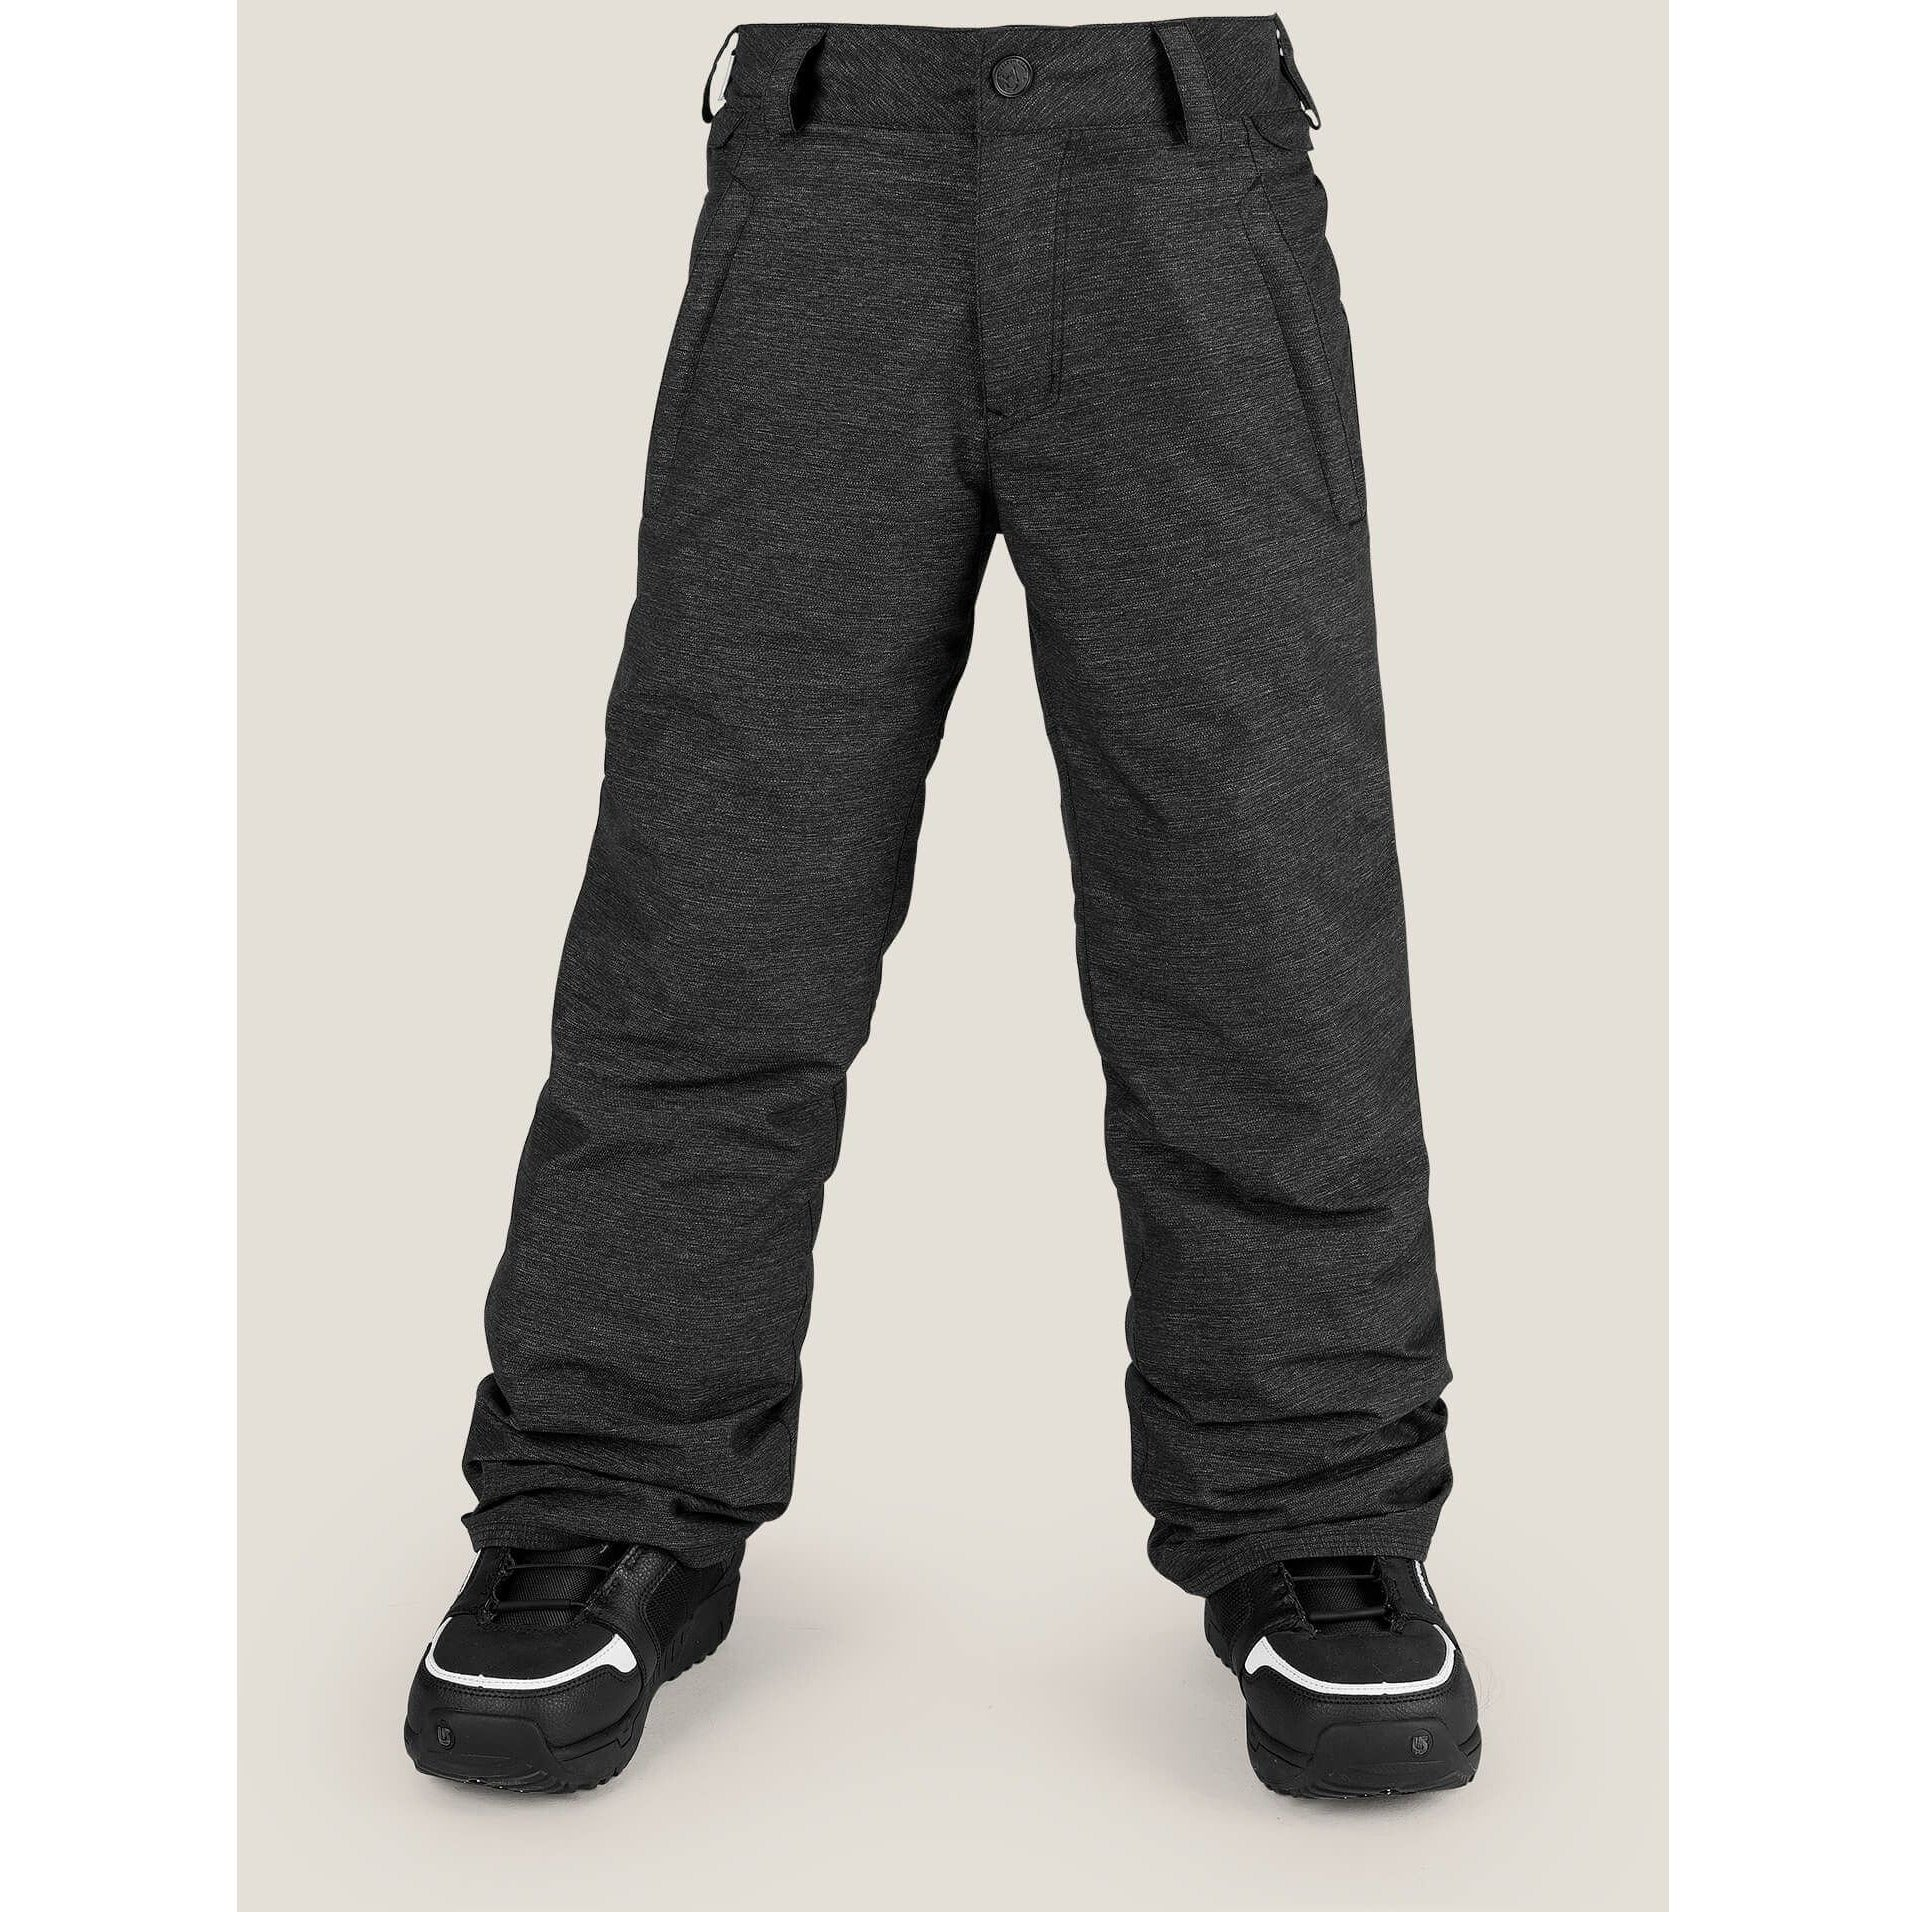 Volcom Explorer Insulated Kid's Snow Pants - 88 Gear